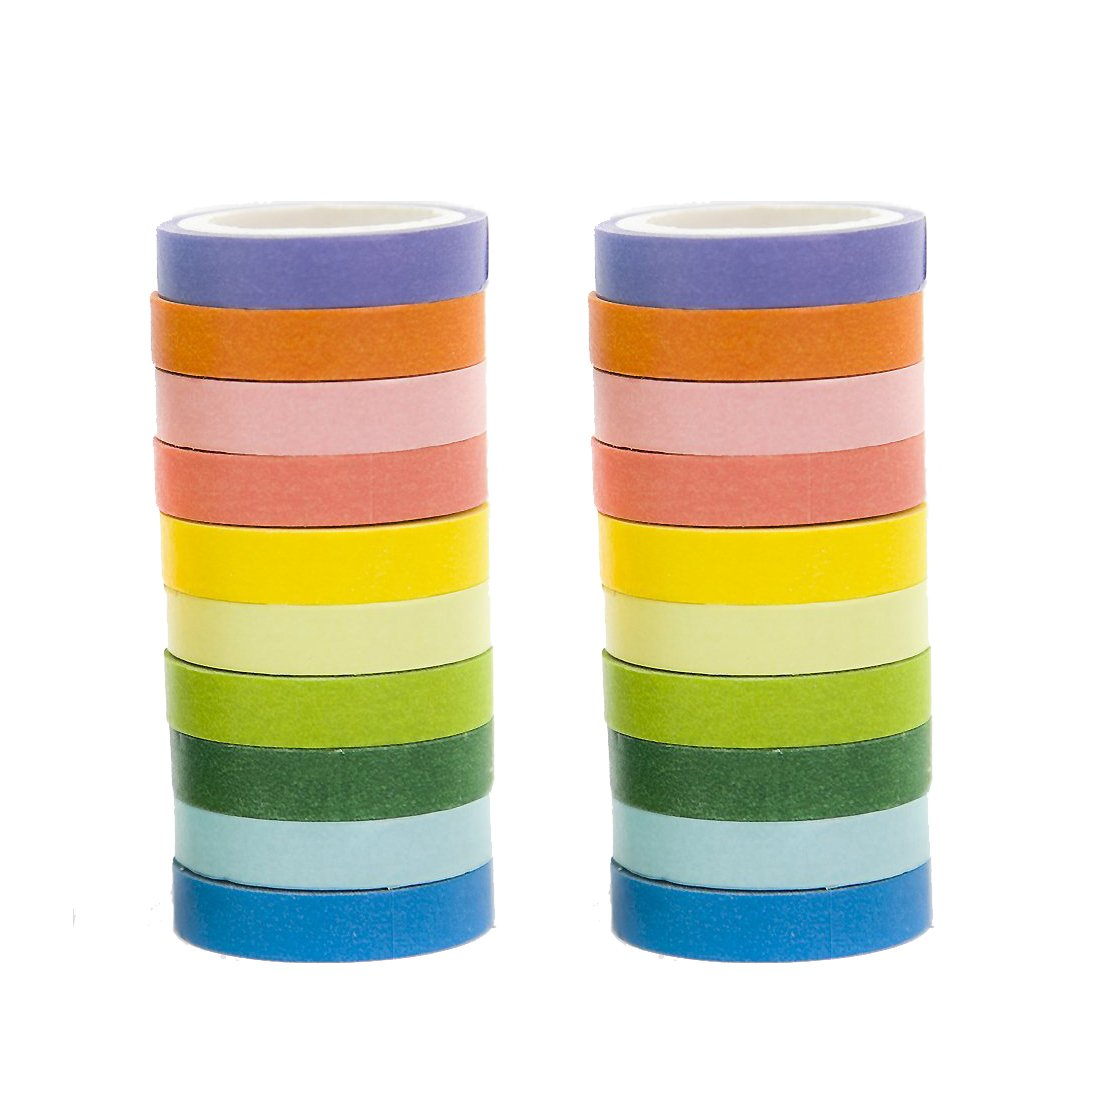 20 Rolls DIY Washi Tape , solid color wrapping tape Decorative Craft Tape Washi Rainbow Candy Color Washi Sticky Paper Masking Adhesive Tape Scrapbooking and Office Party Decoration